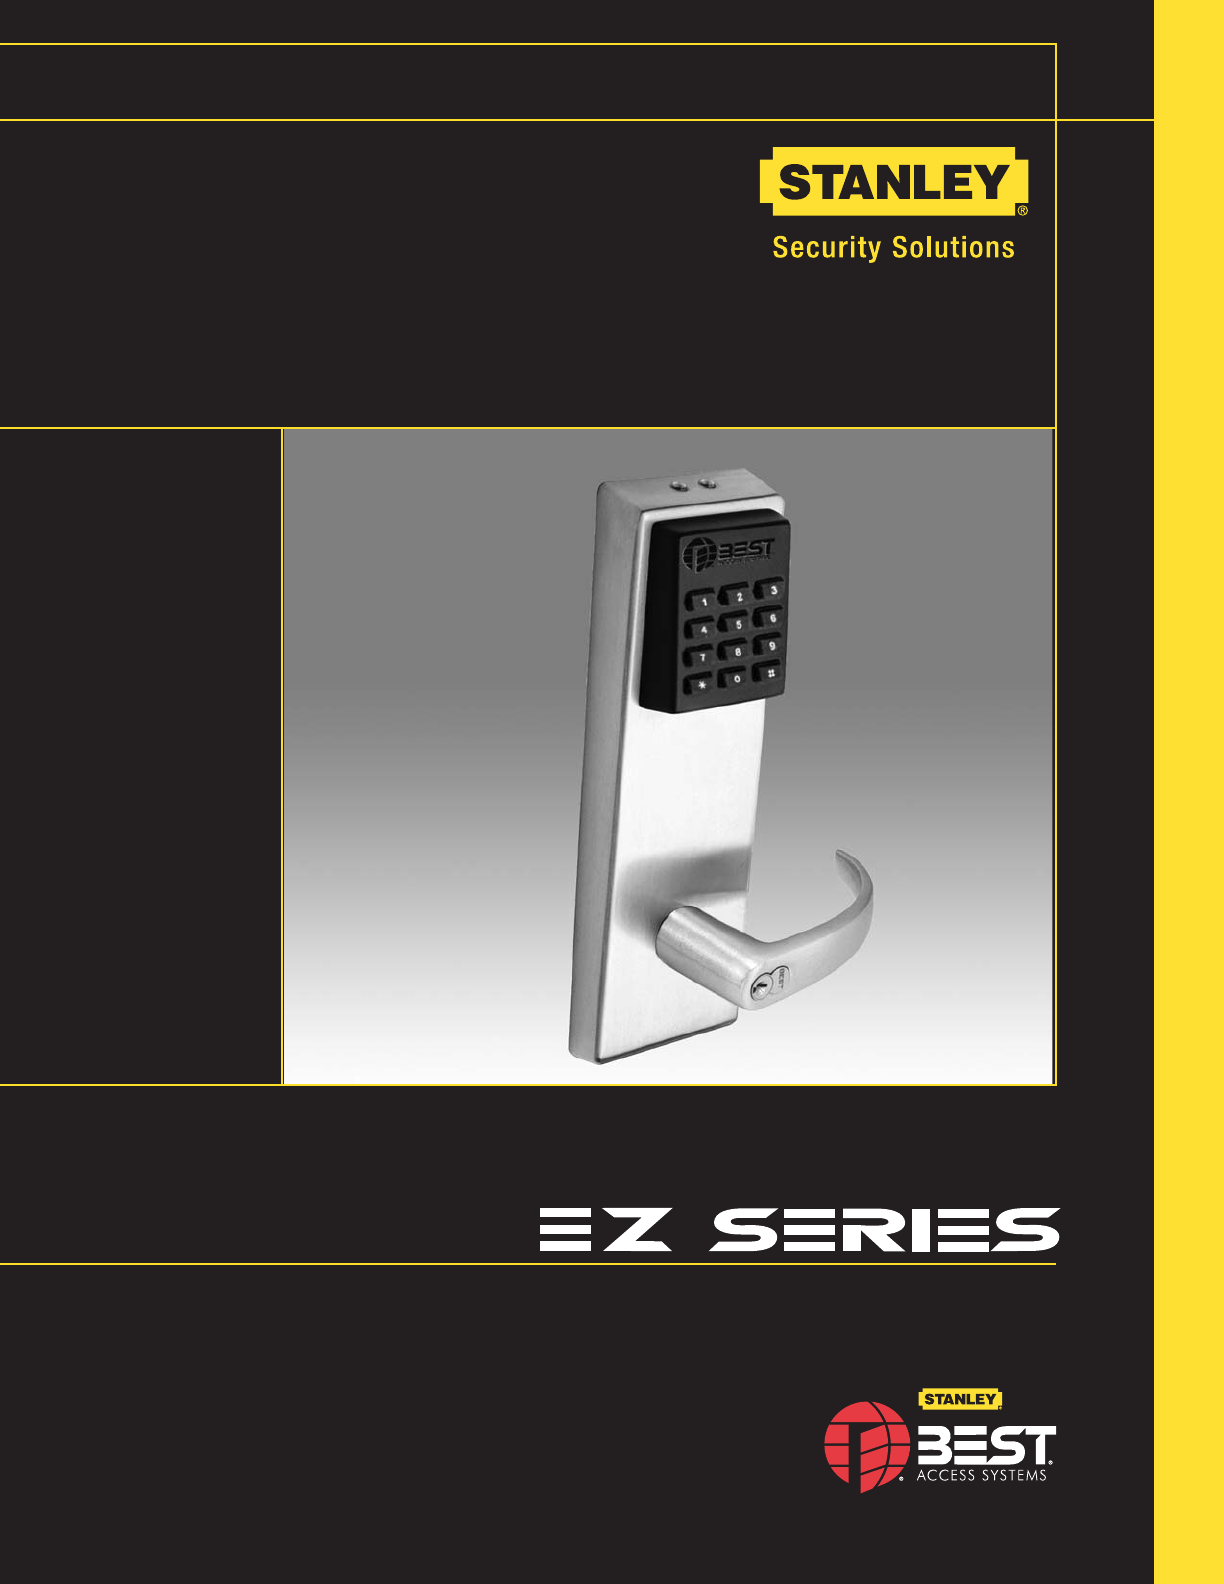 Stanley Black Amp Decker Door Keypad Ez Locks User Guide